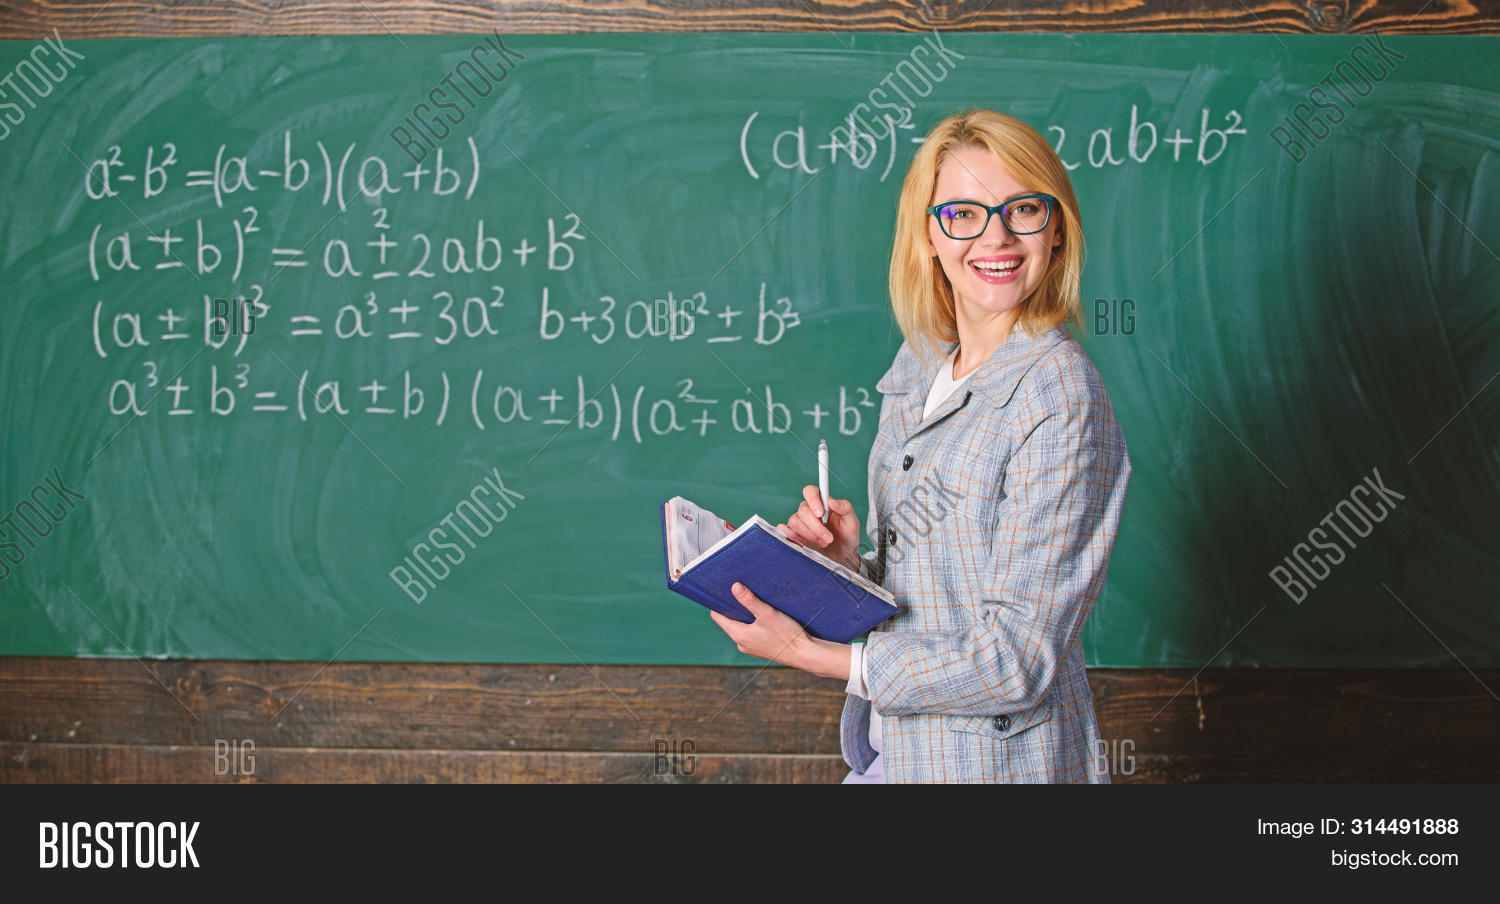 Effective Teaching Involve Acquiring Relevant Knowledge. Woman Teaching Near Chalkboard In Classroom